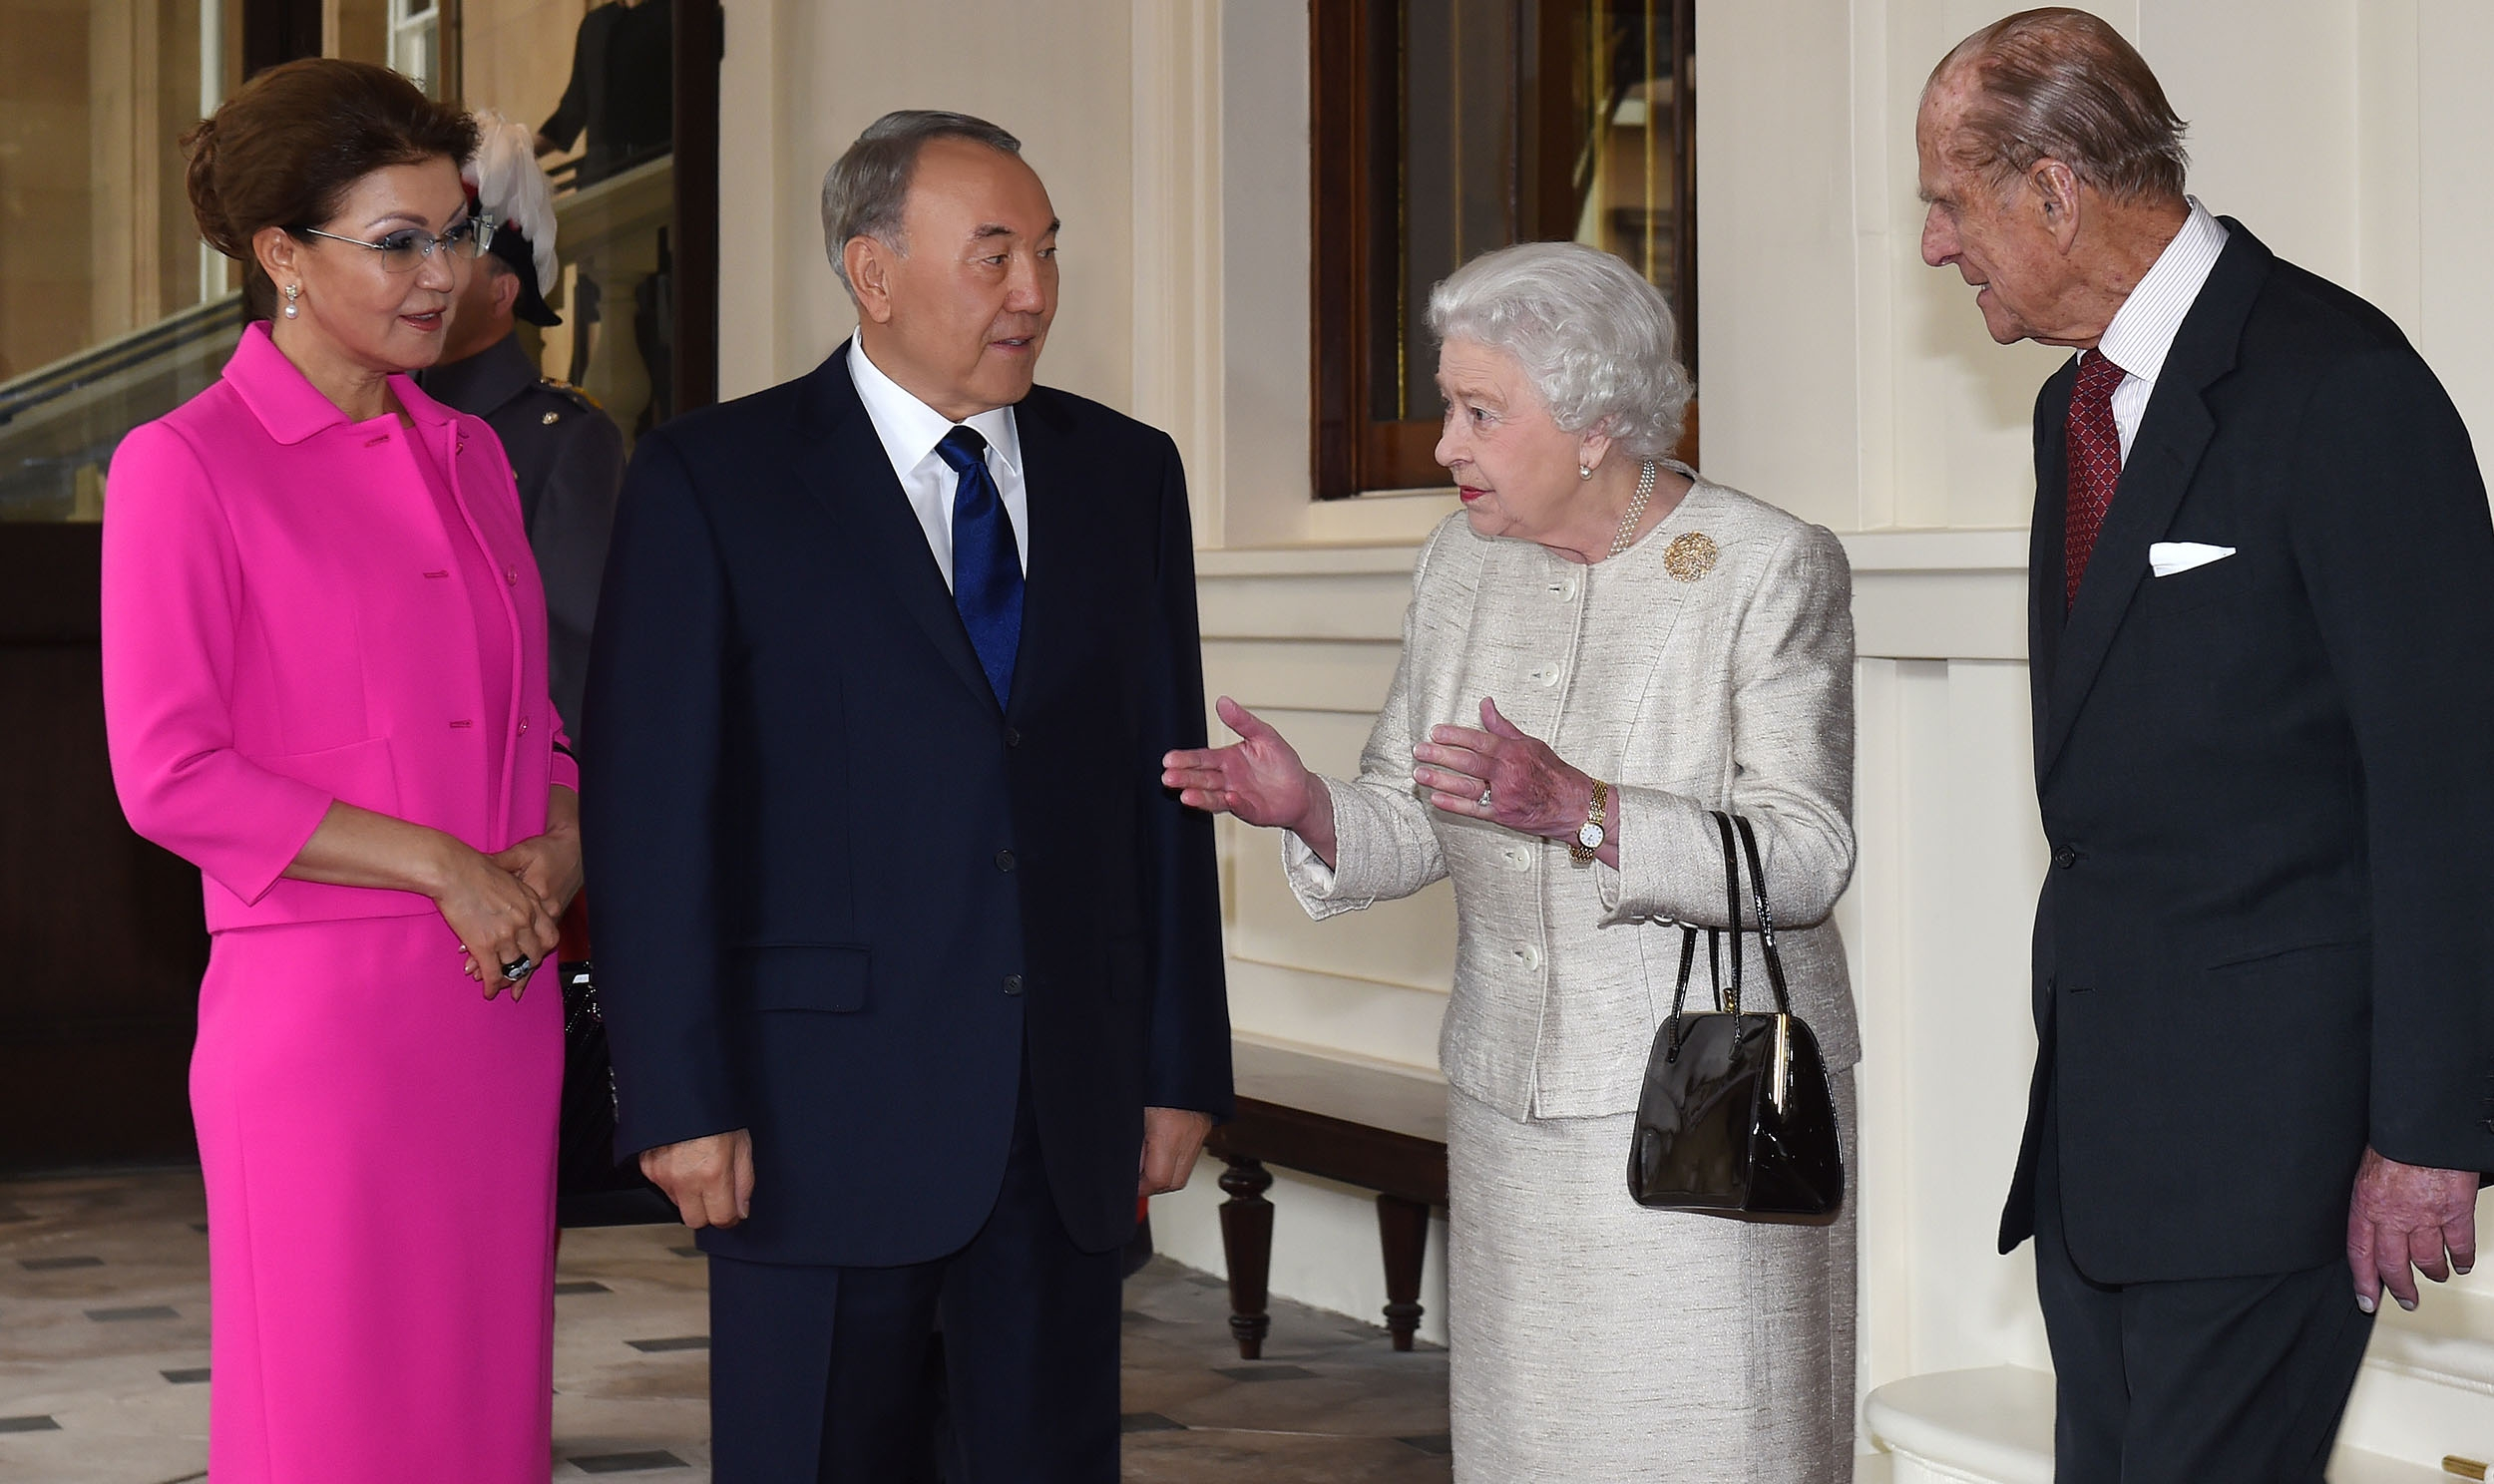 Royal family Dariga Nazarbayeva left with her father former President Nursultan Nazarbayev meeting the queen during a trip to London in 2015jpg